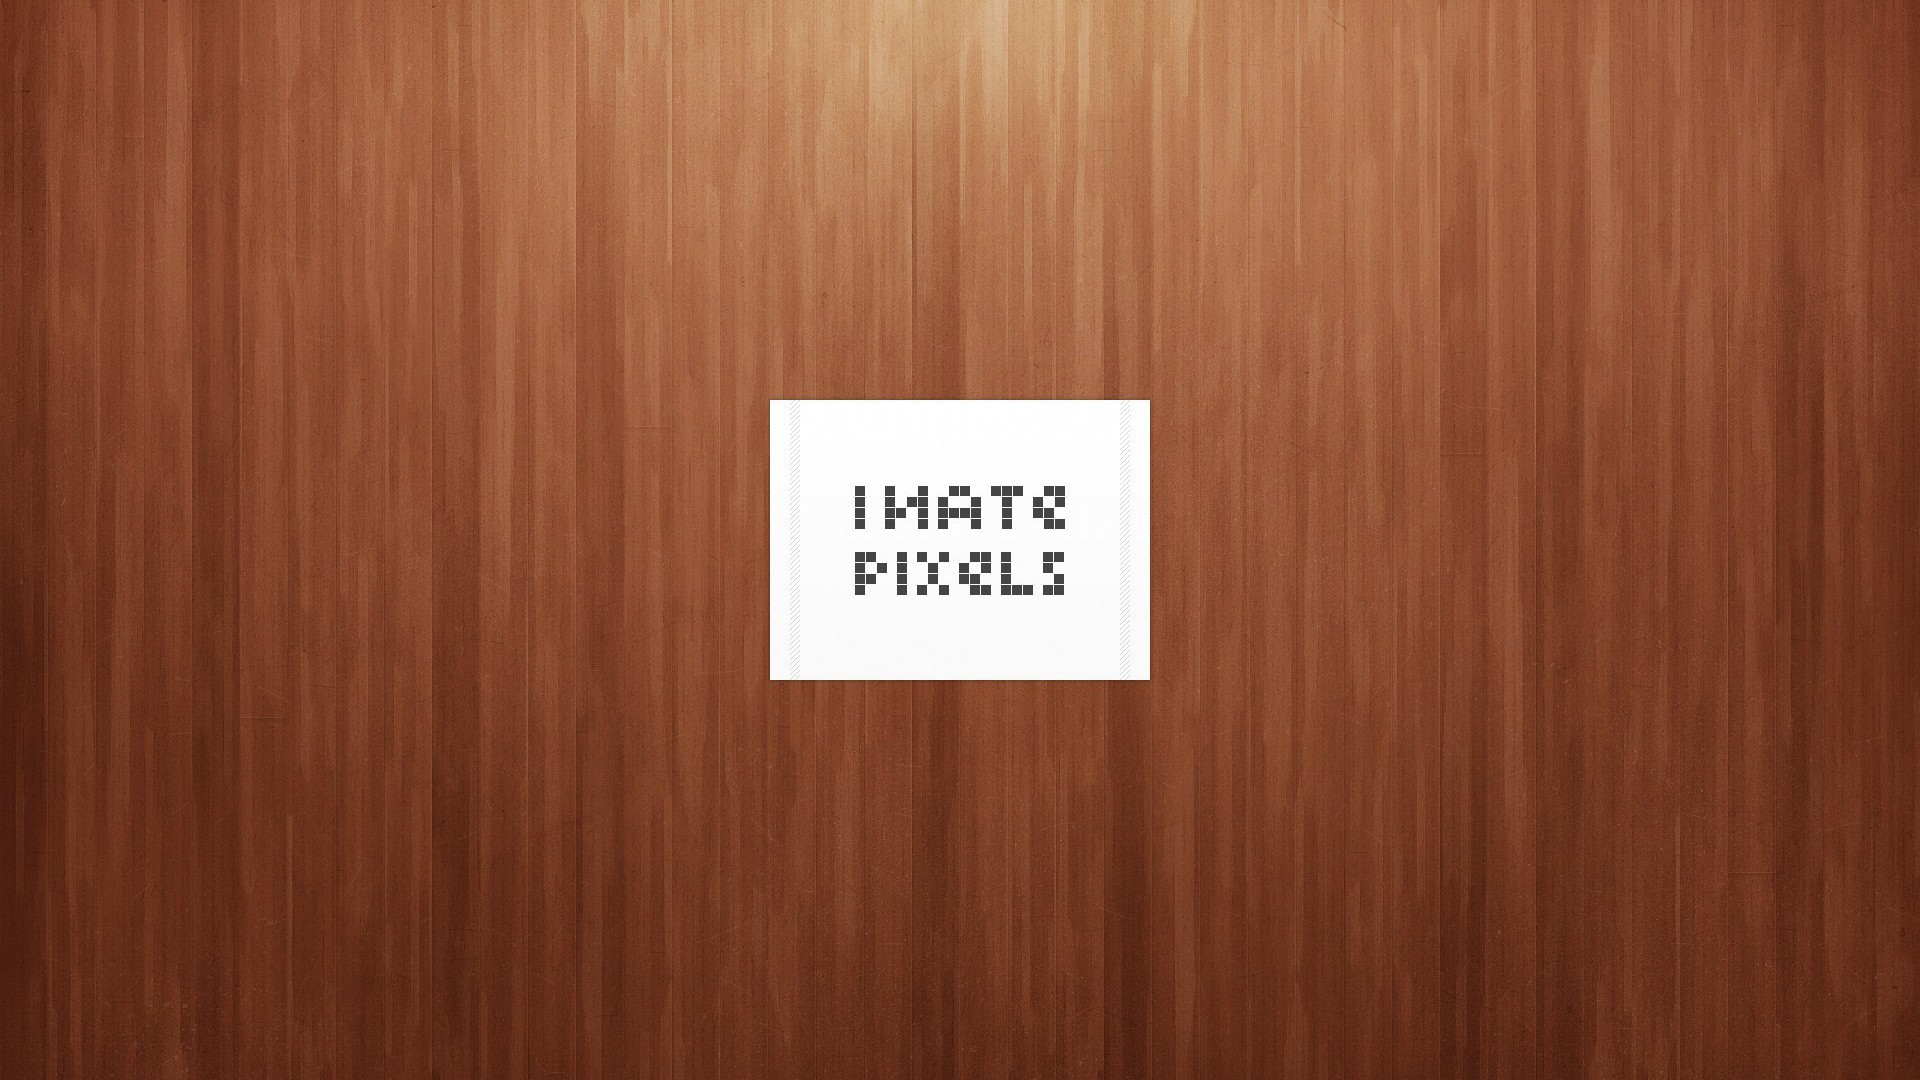 minimalist desktop wallpaper wood - photo #15